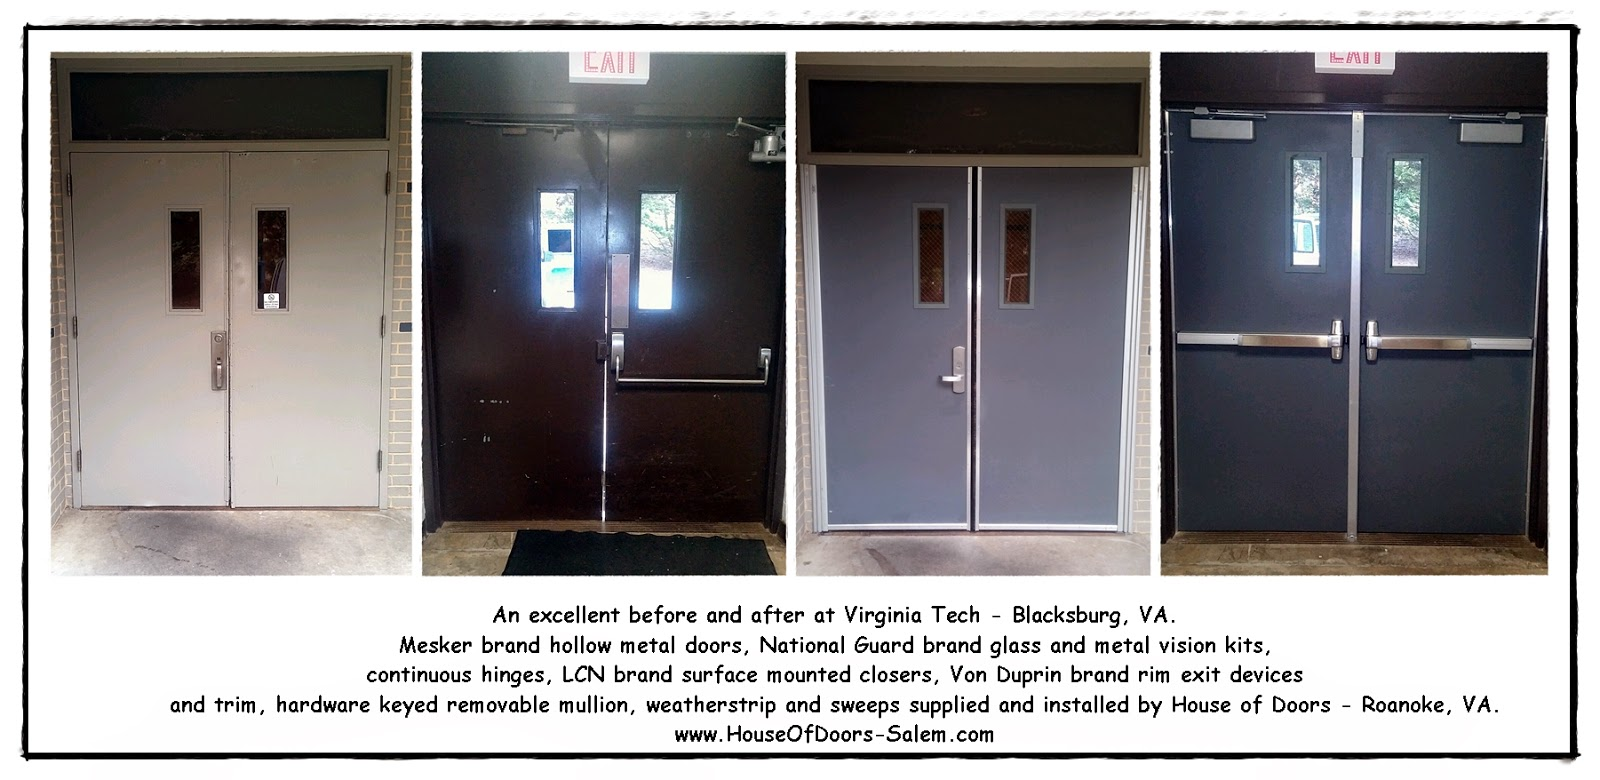 Commercial doors frames and hardware correctly supplied and impeccably installed by House of Doors - Roanoke VA & doors frames and hardware correctly supplied and impeccably ... pezcame.com